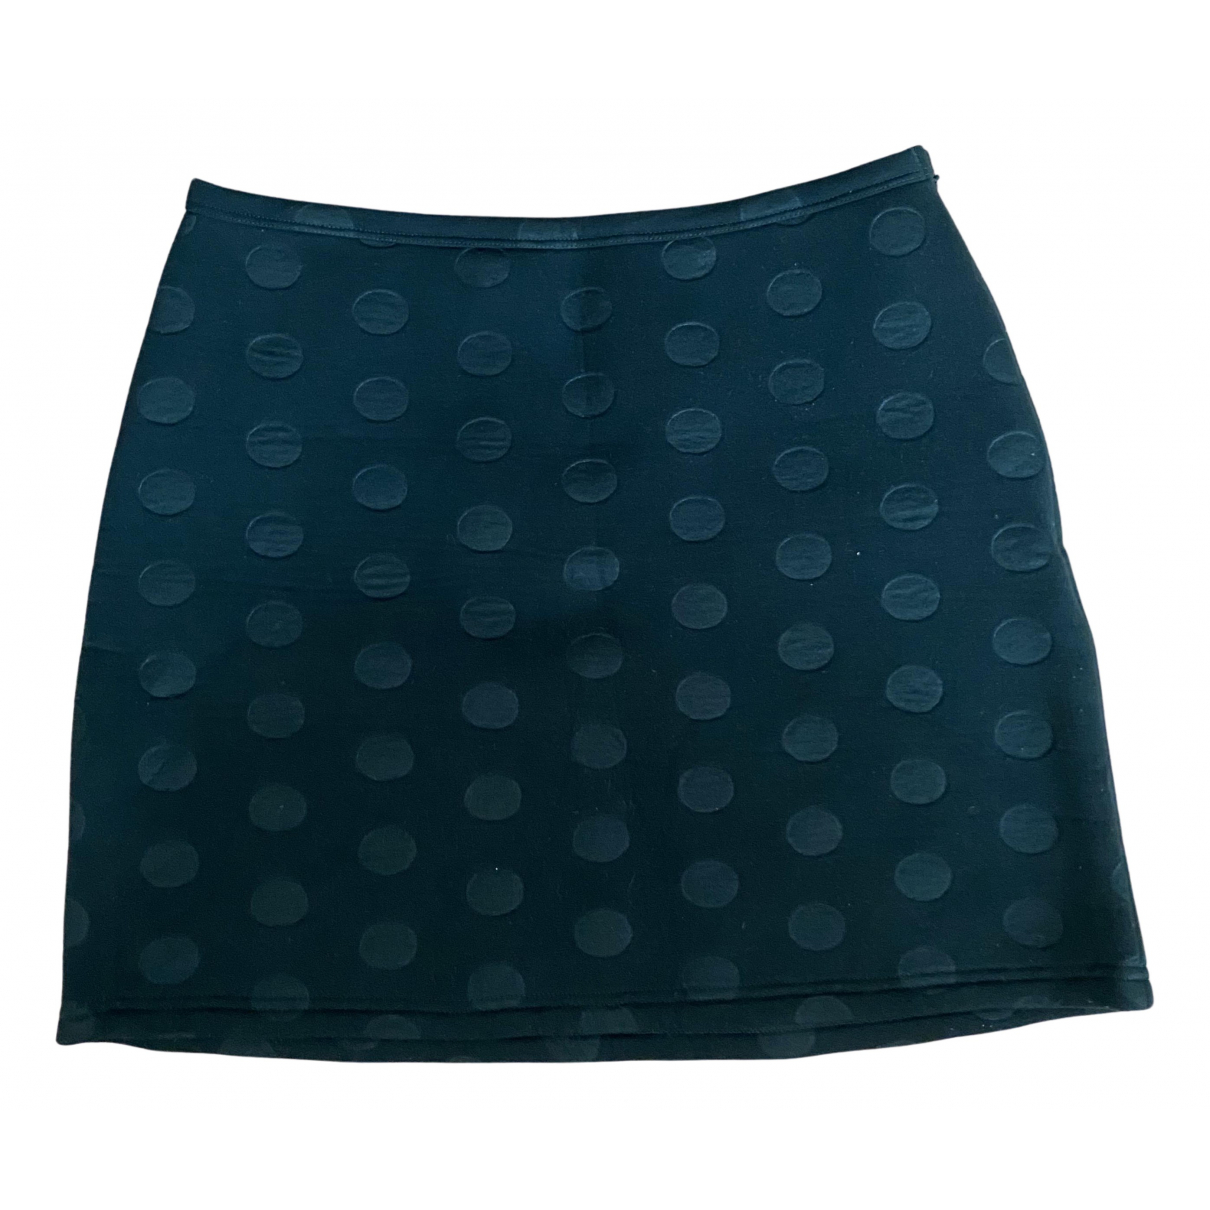 Sonia By Sonia Rykiel N Green Sponge skirt for Women M International